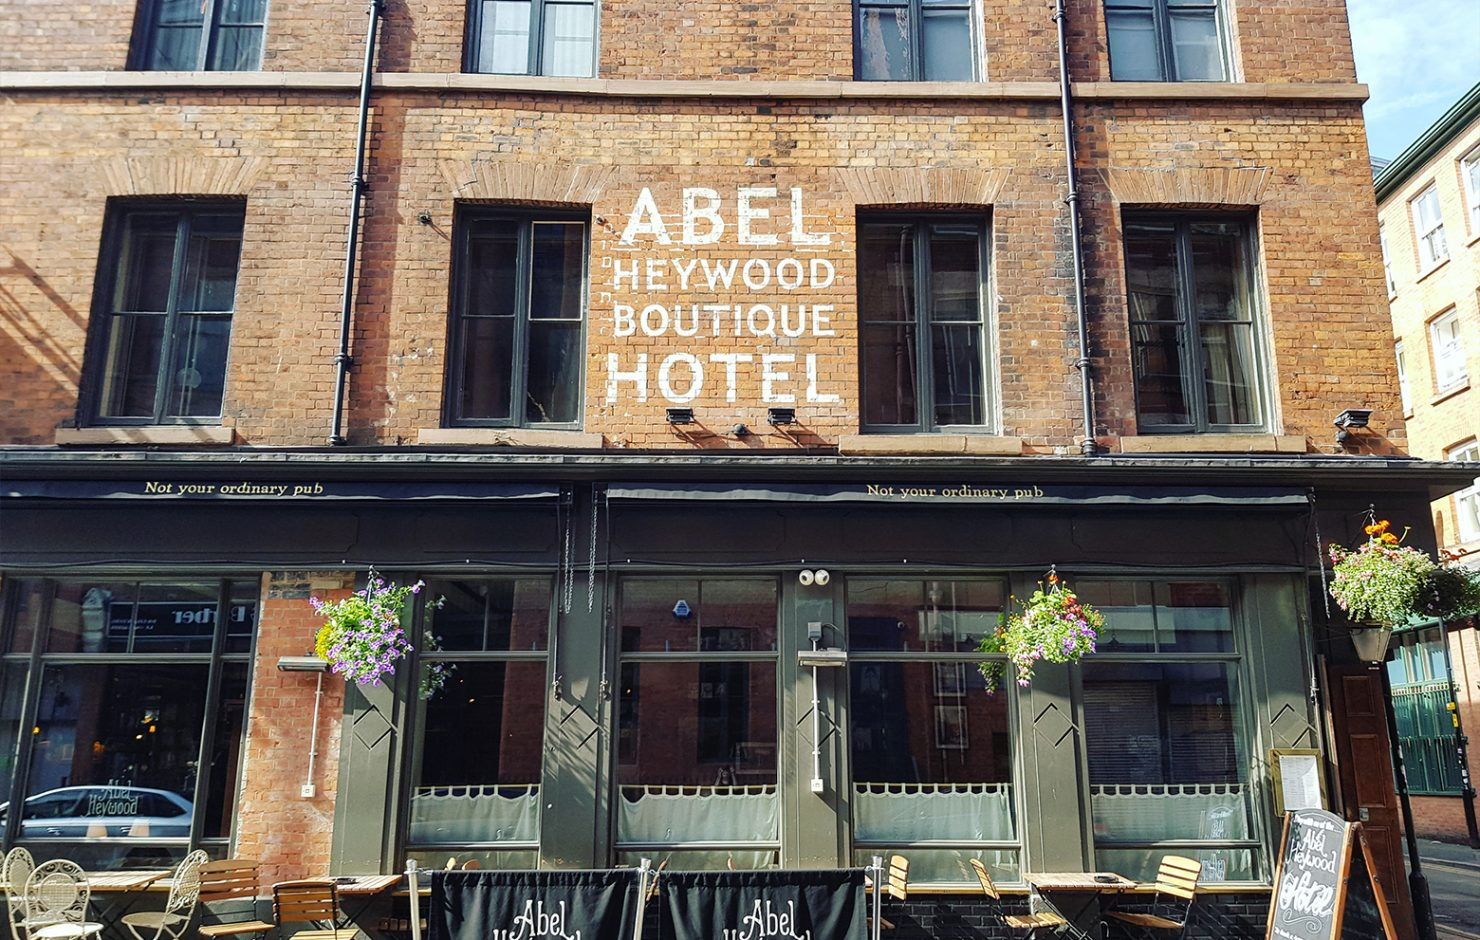 Abel Heywood named one of the best boutique hotels in Manchester